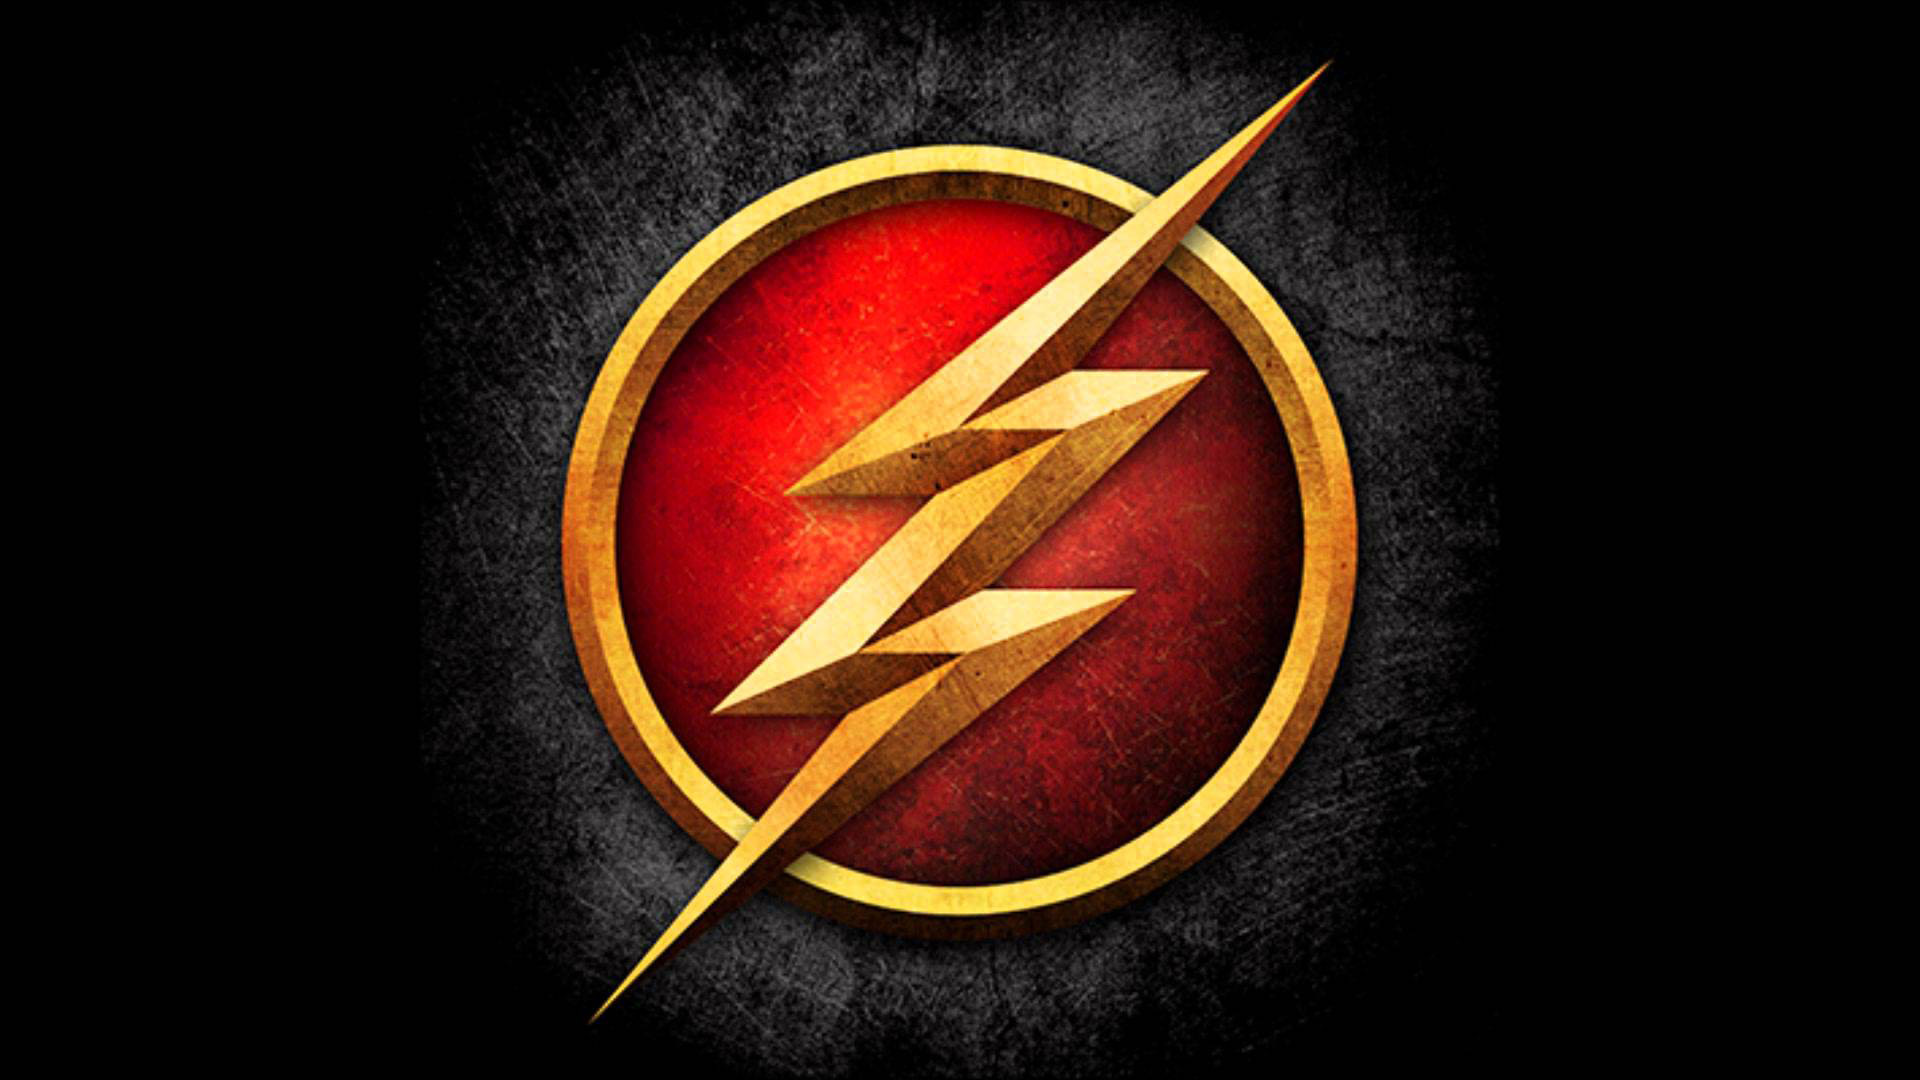 the flash wallpaper hd Download 1920×1200 The Flash Wallpapers HD (38  Wallpapers)